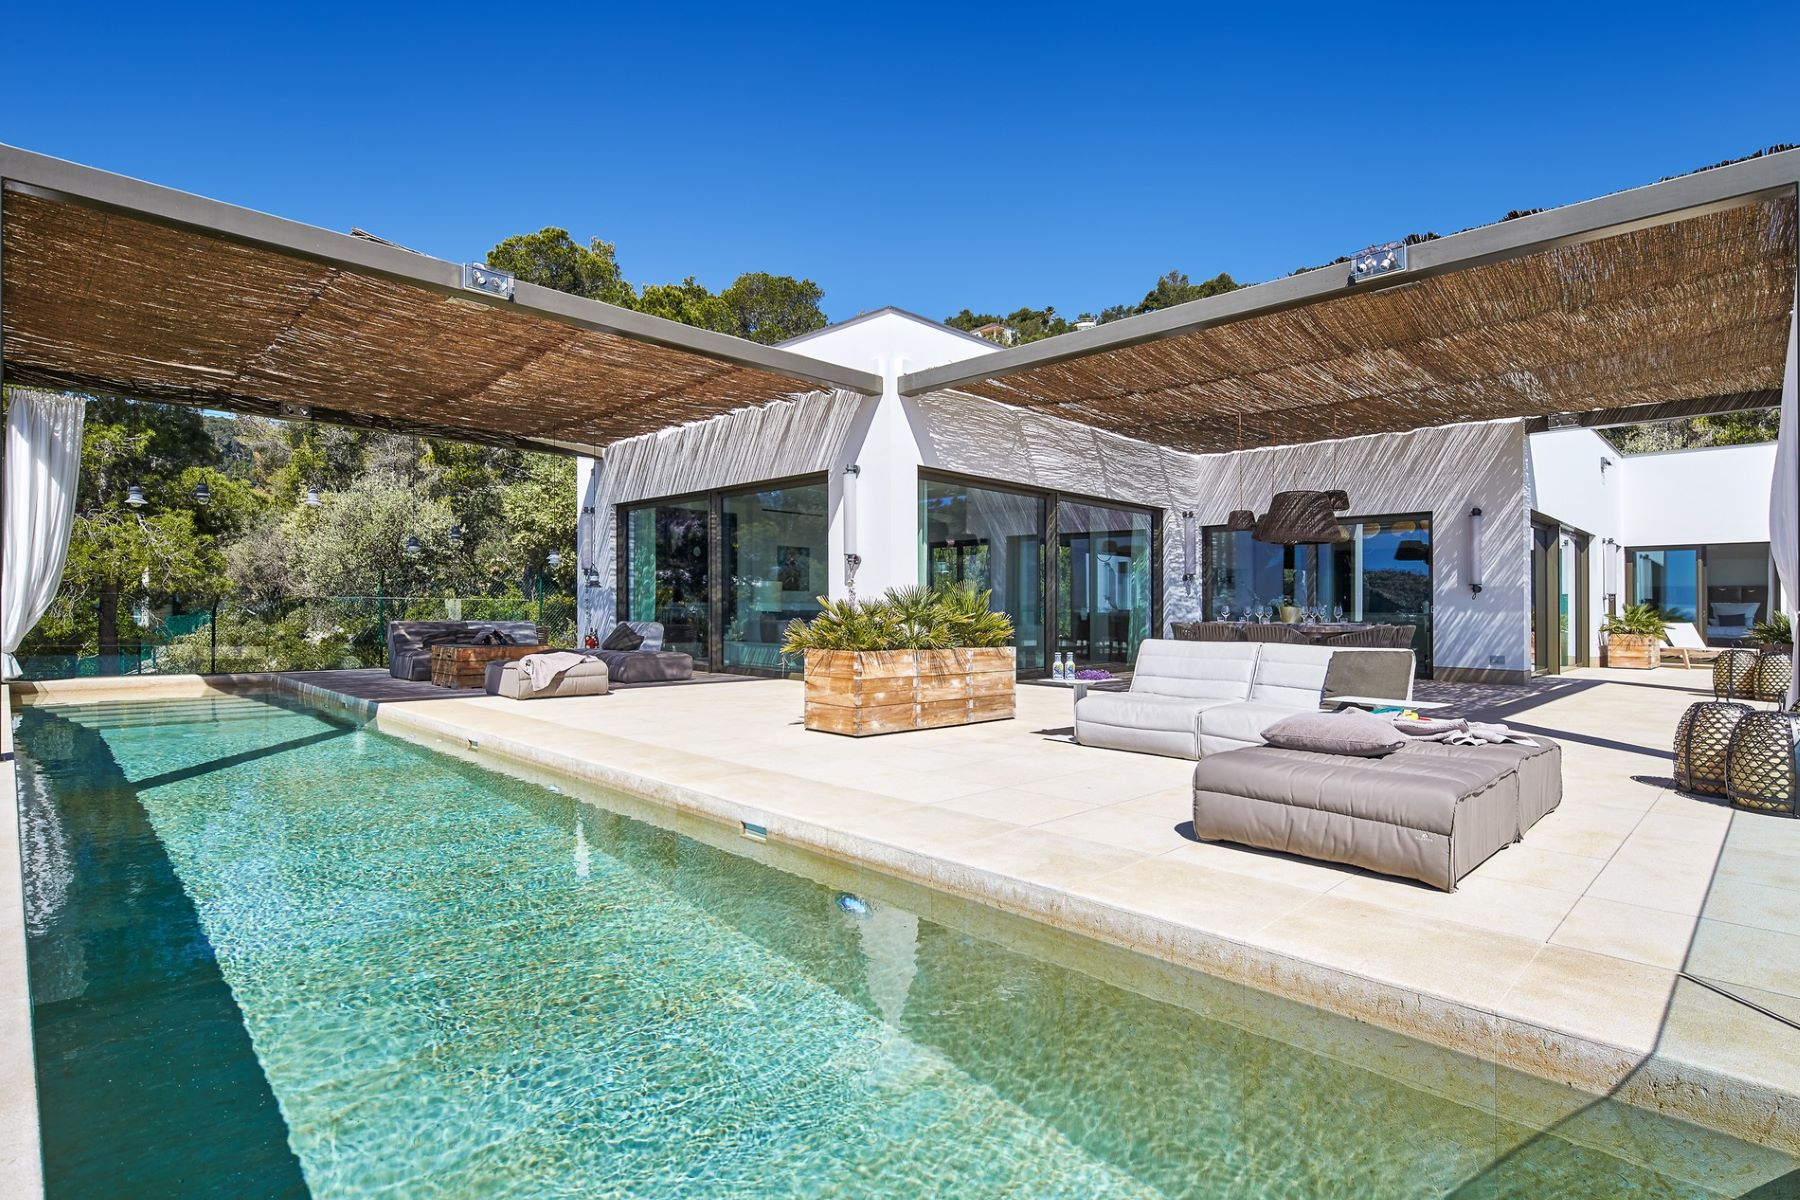 Single Family Home for Sale at Unique designer villa in Son Vida Other Balearic Islands, Balearic Islands, Spain